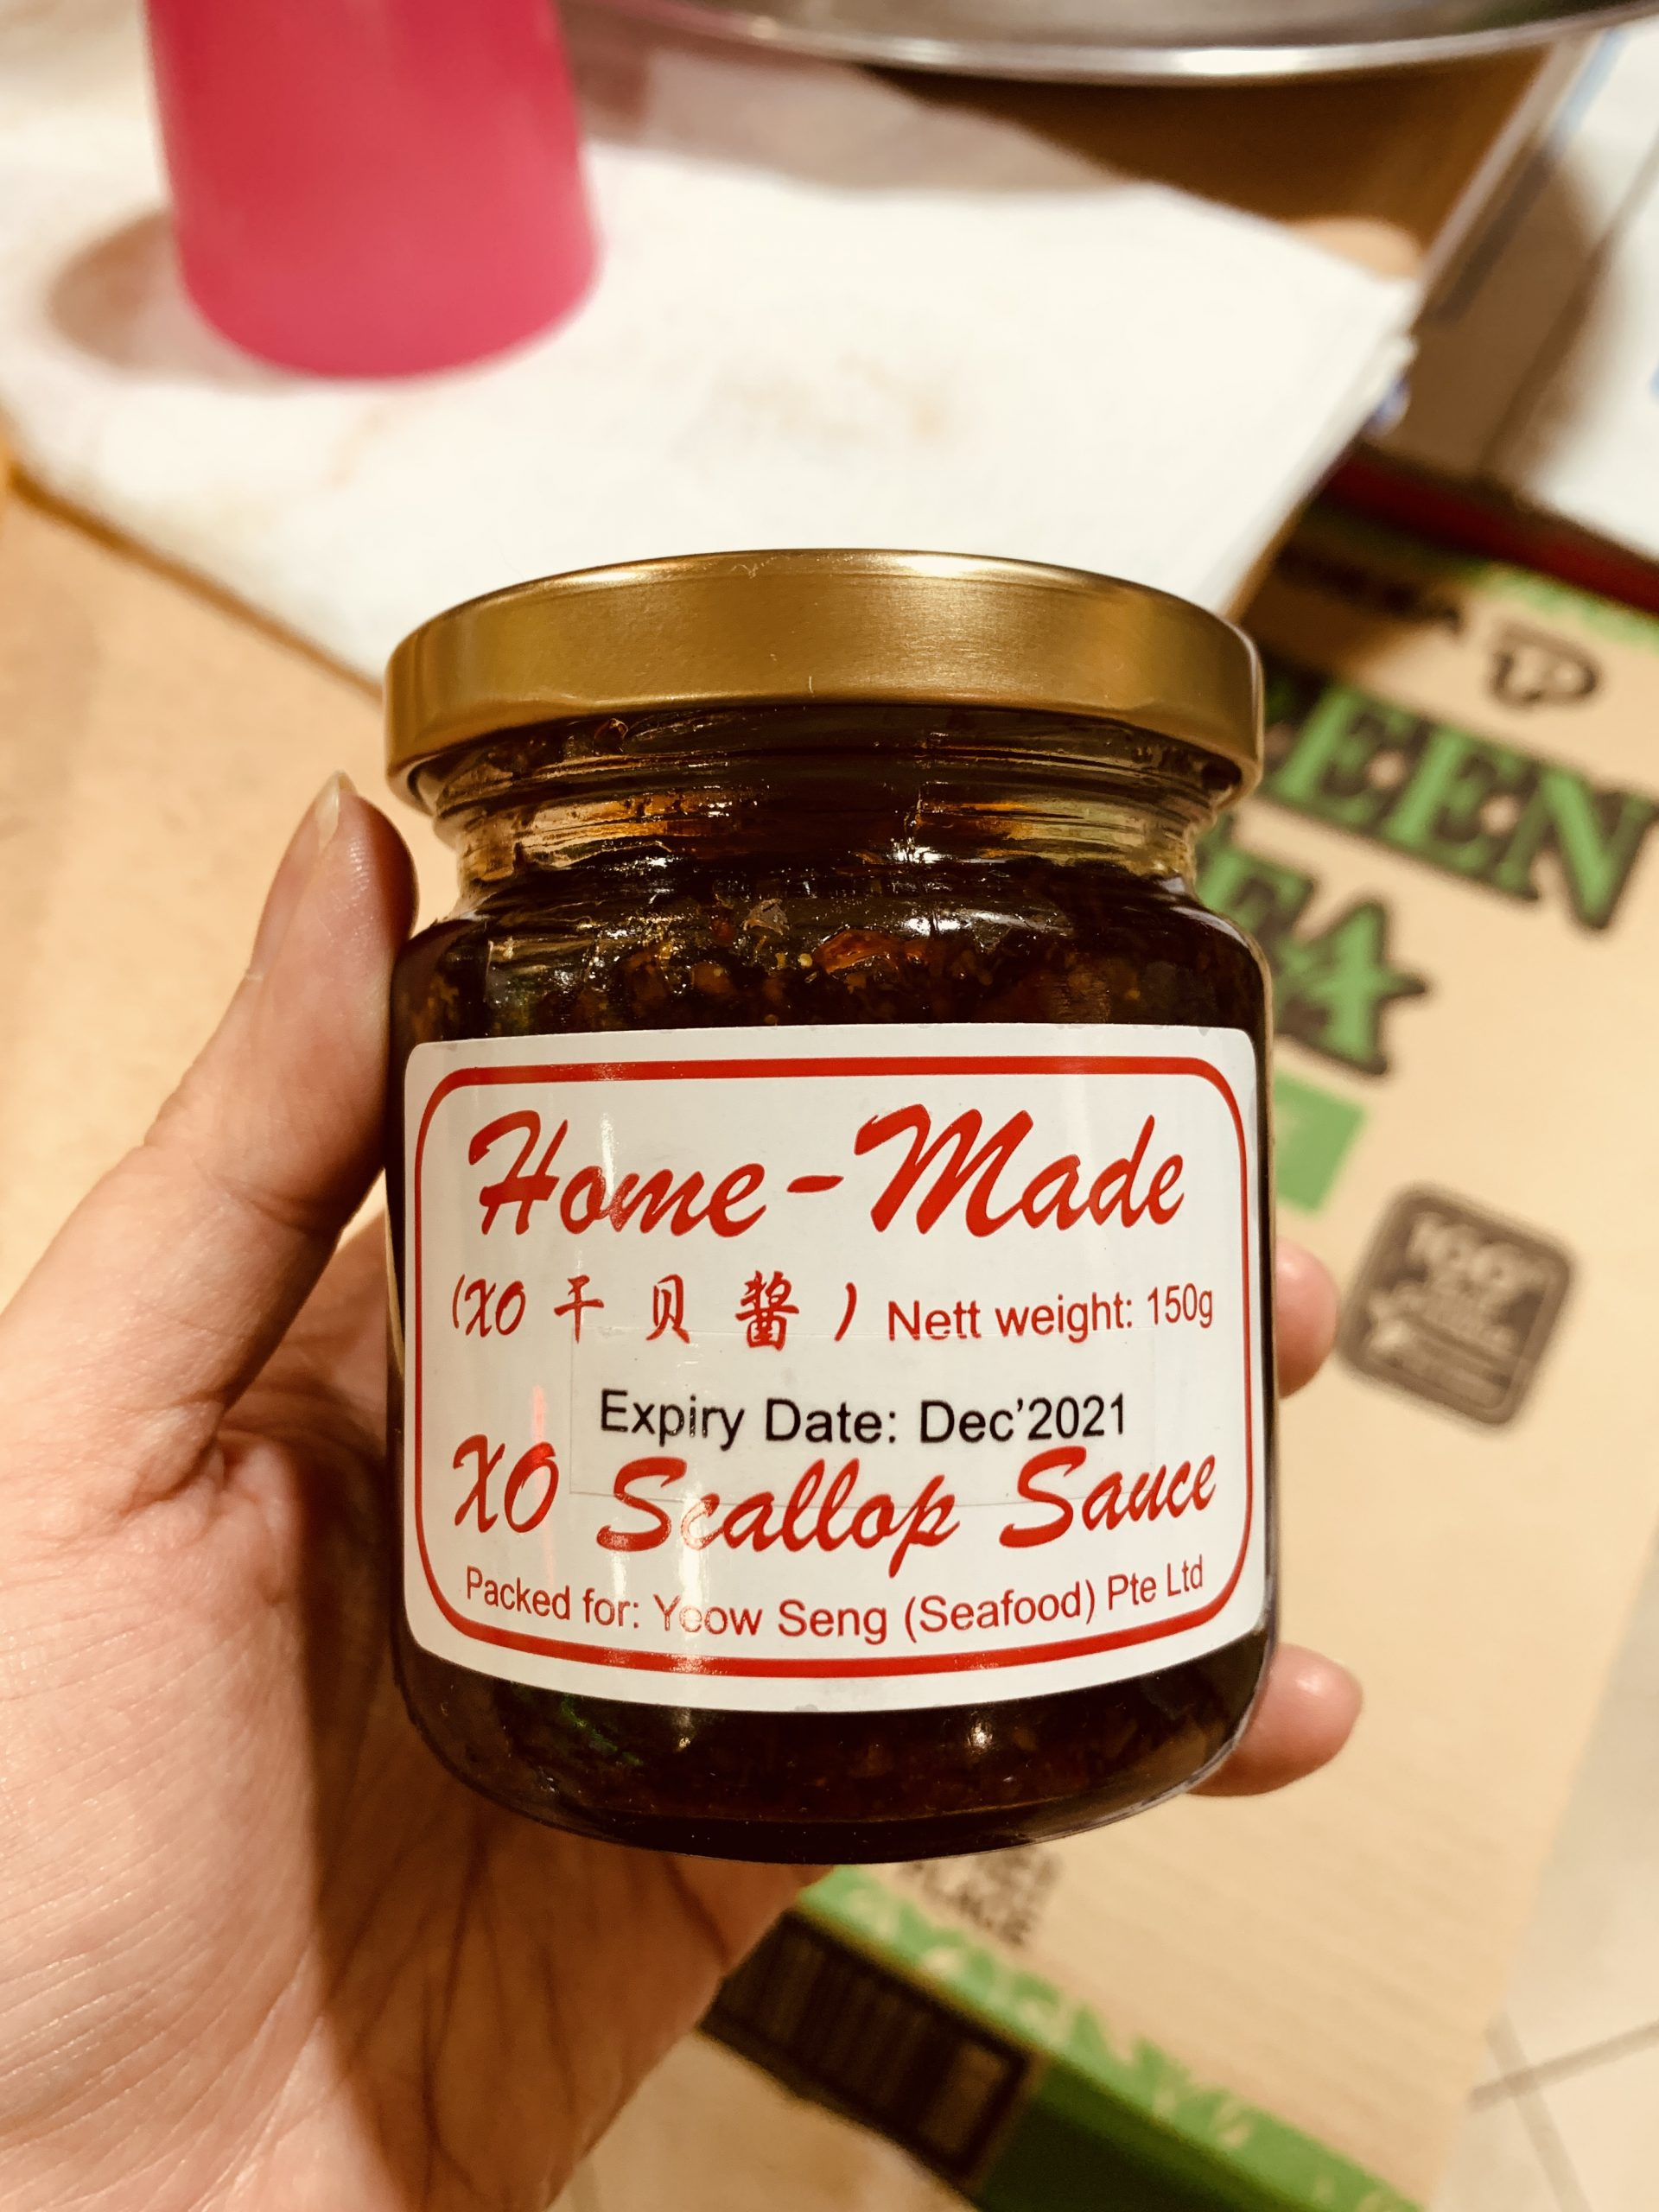 Rabbit Brand Seafood Delicacies - Home-Made XO Scallop Sauce